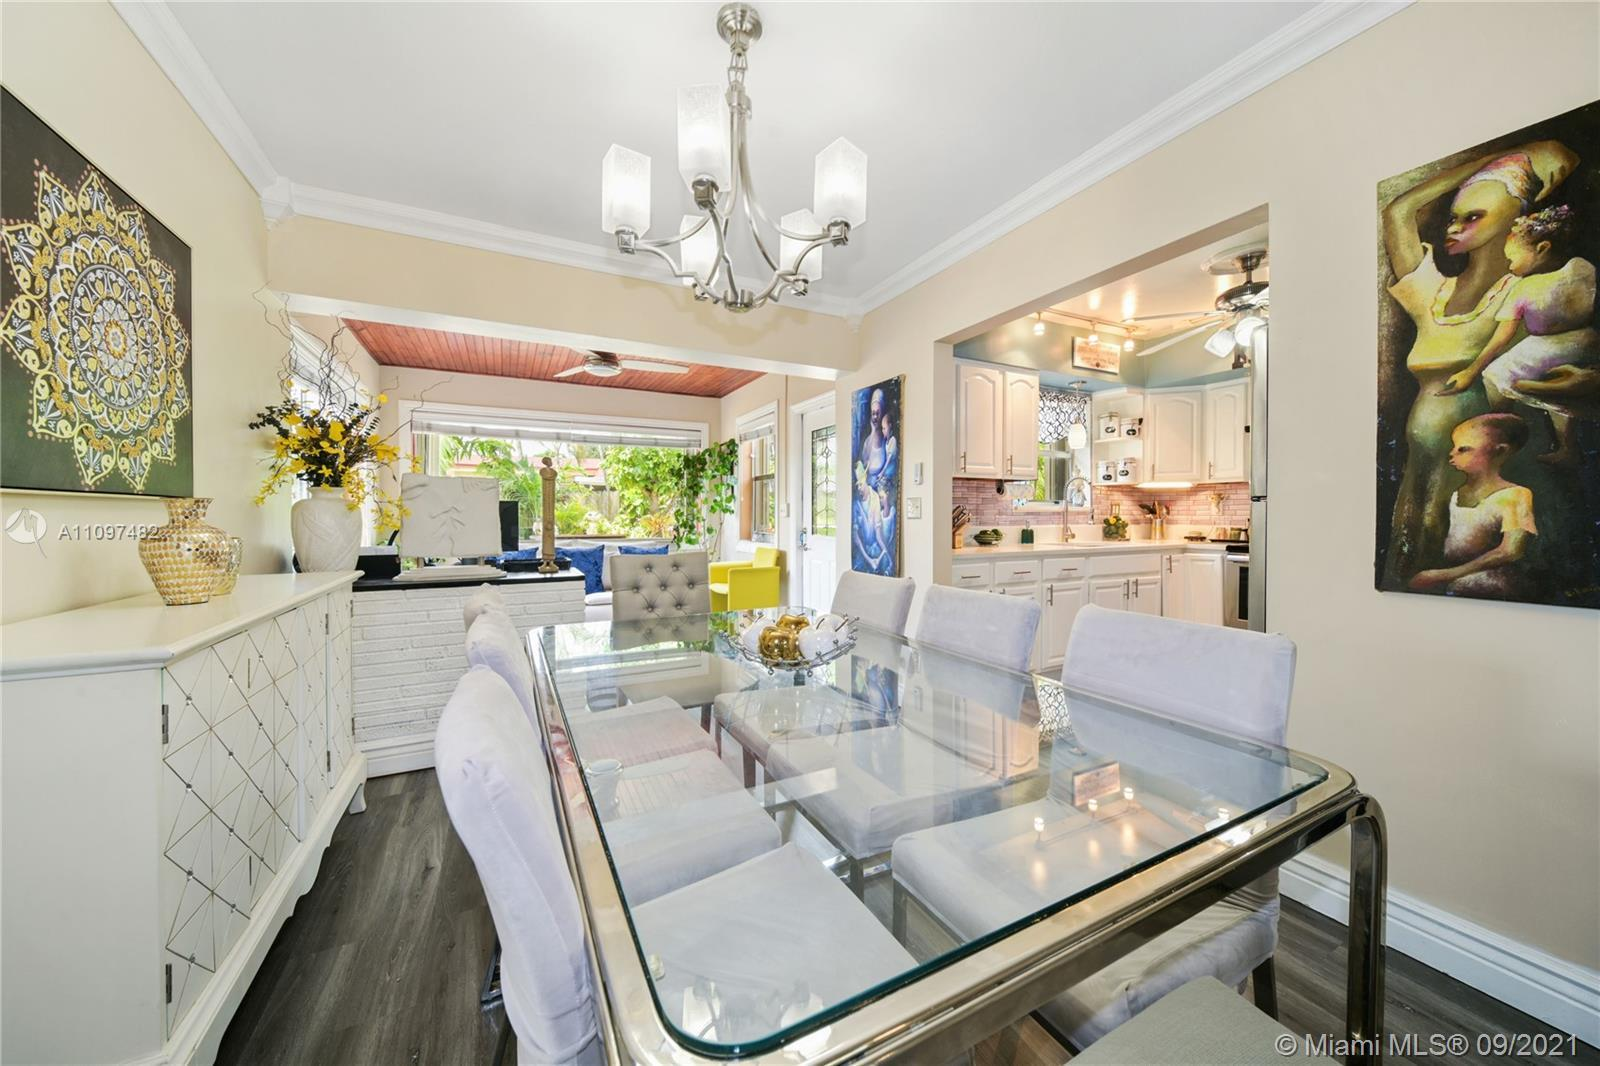 Home is completely updated , from the floors to the walls. It is an owners pride home. Conveniently